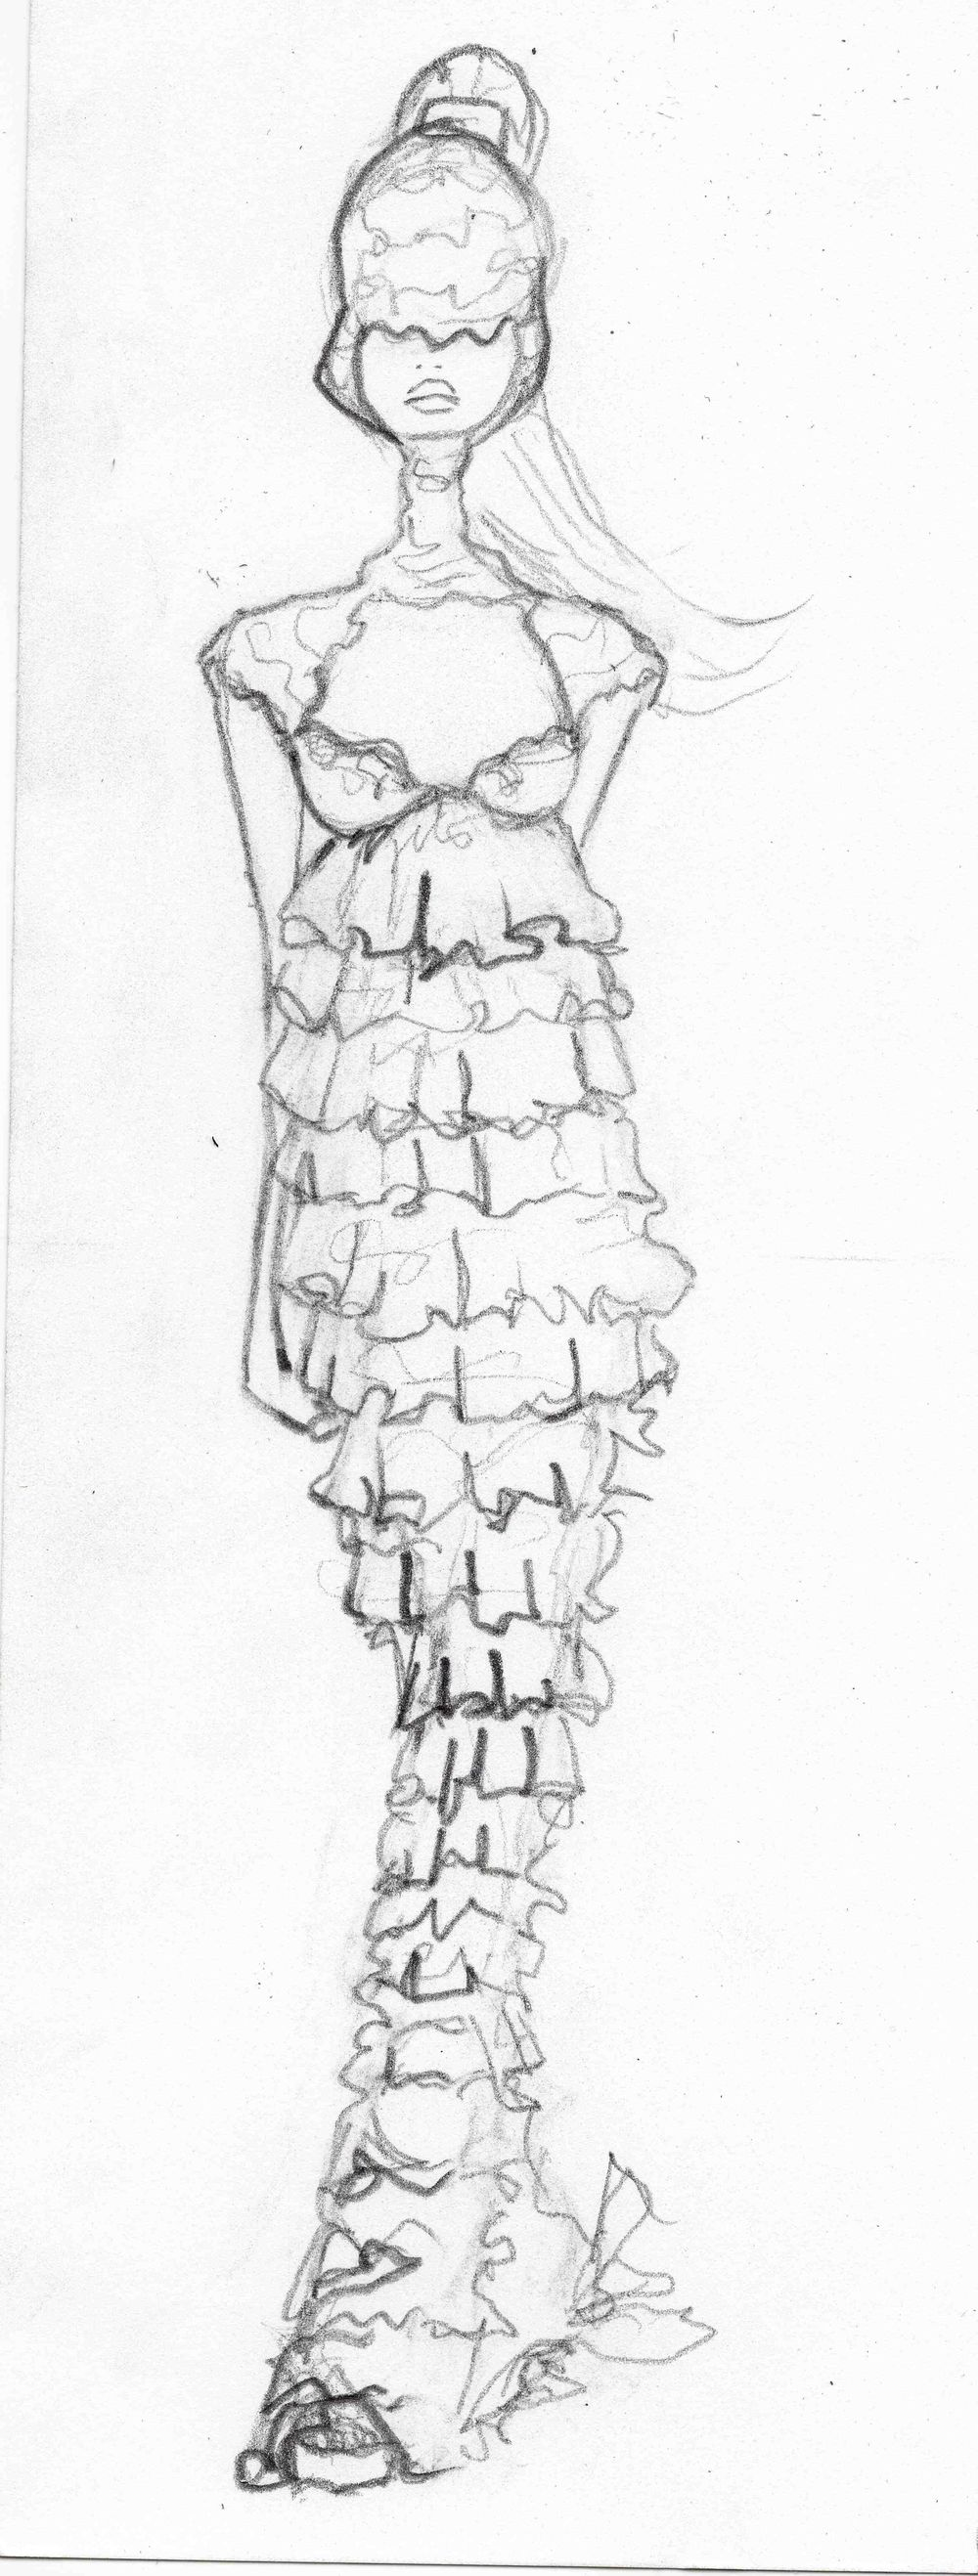 frills - image 2 - student project